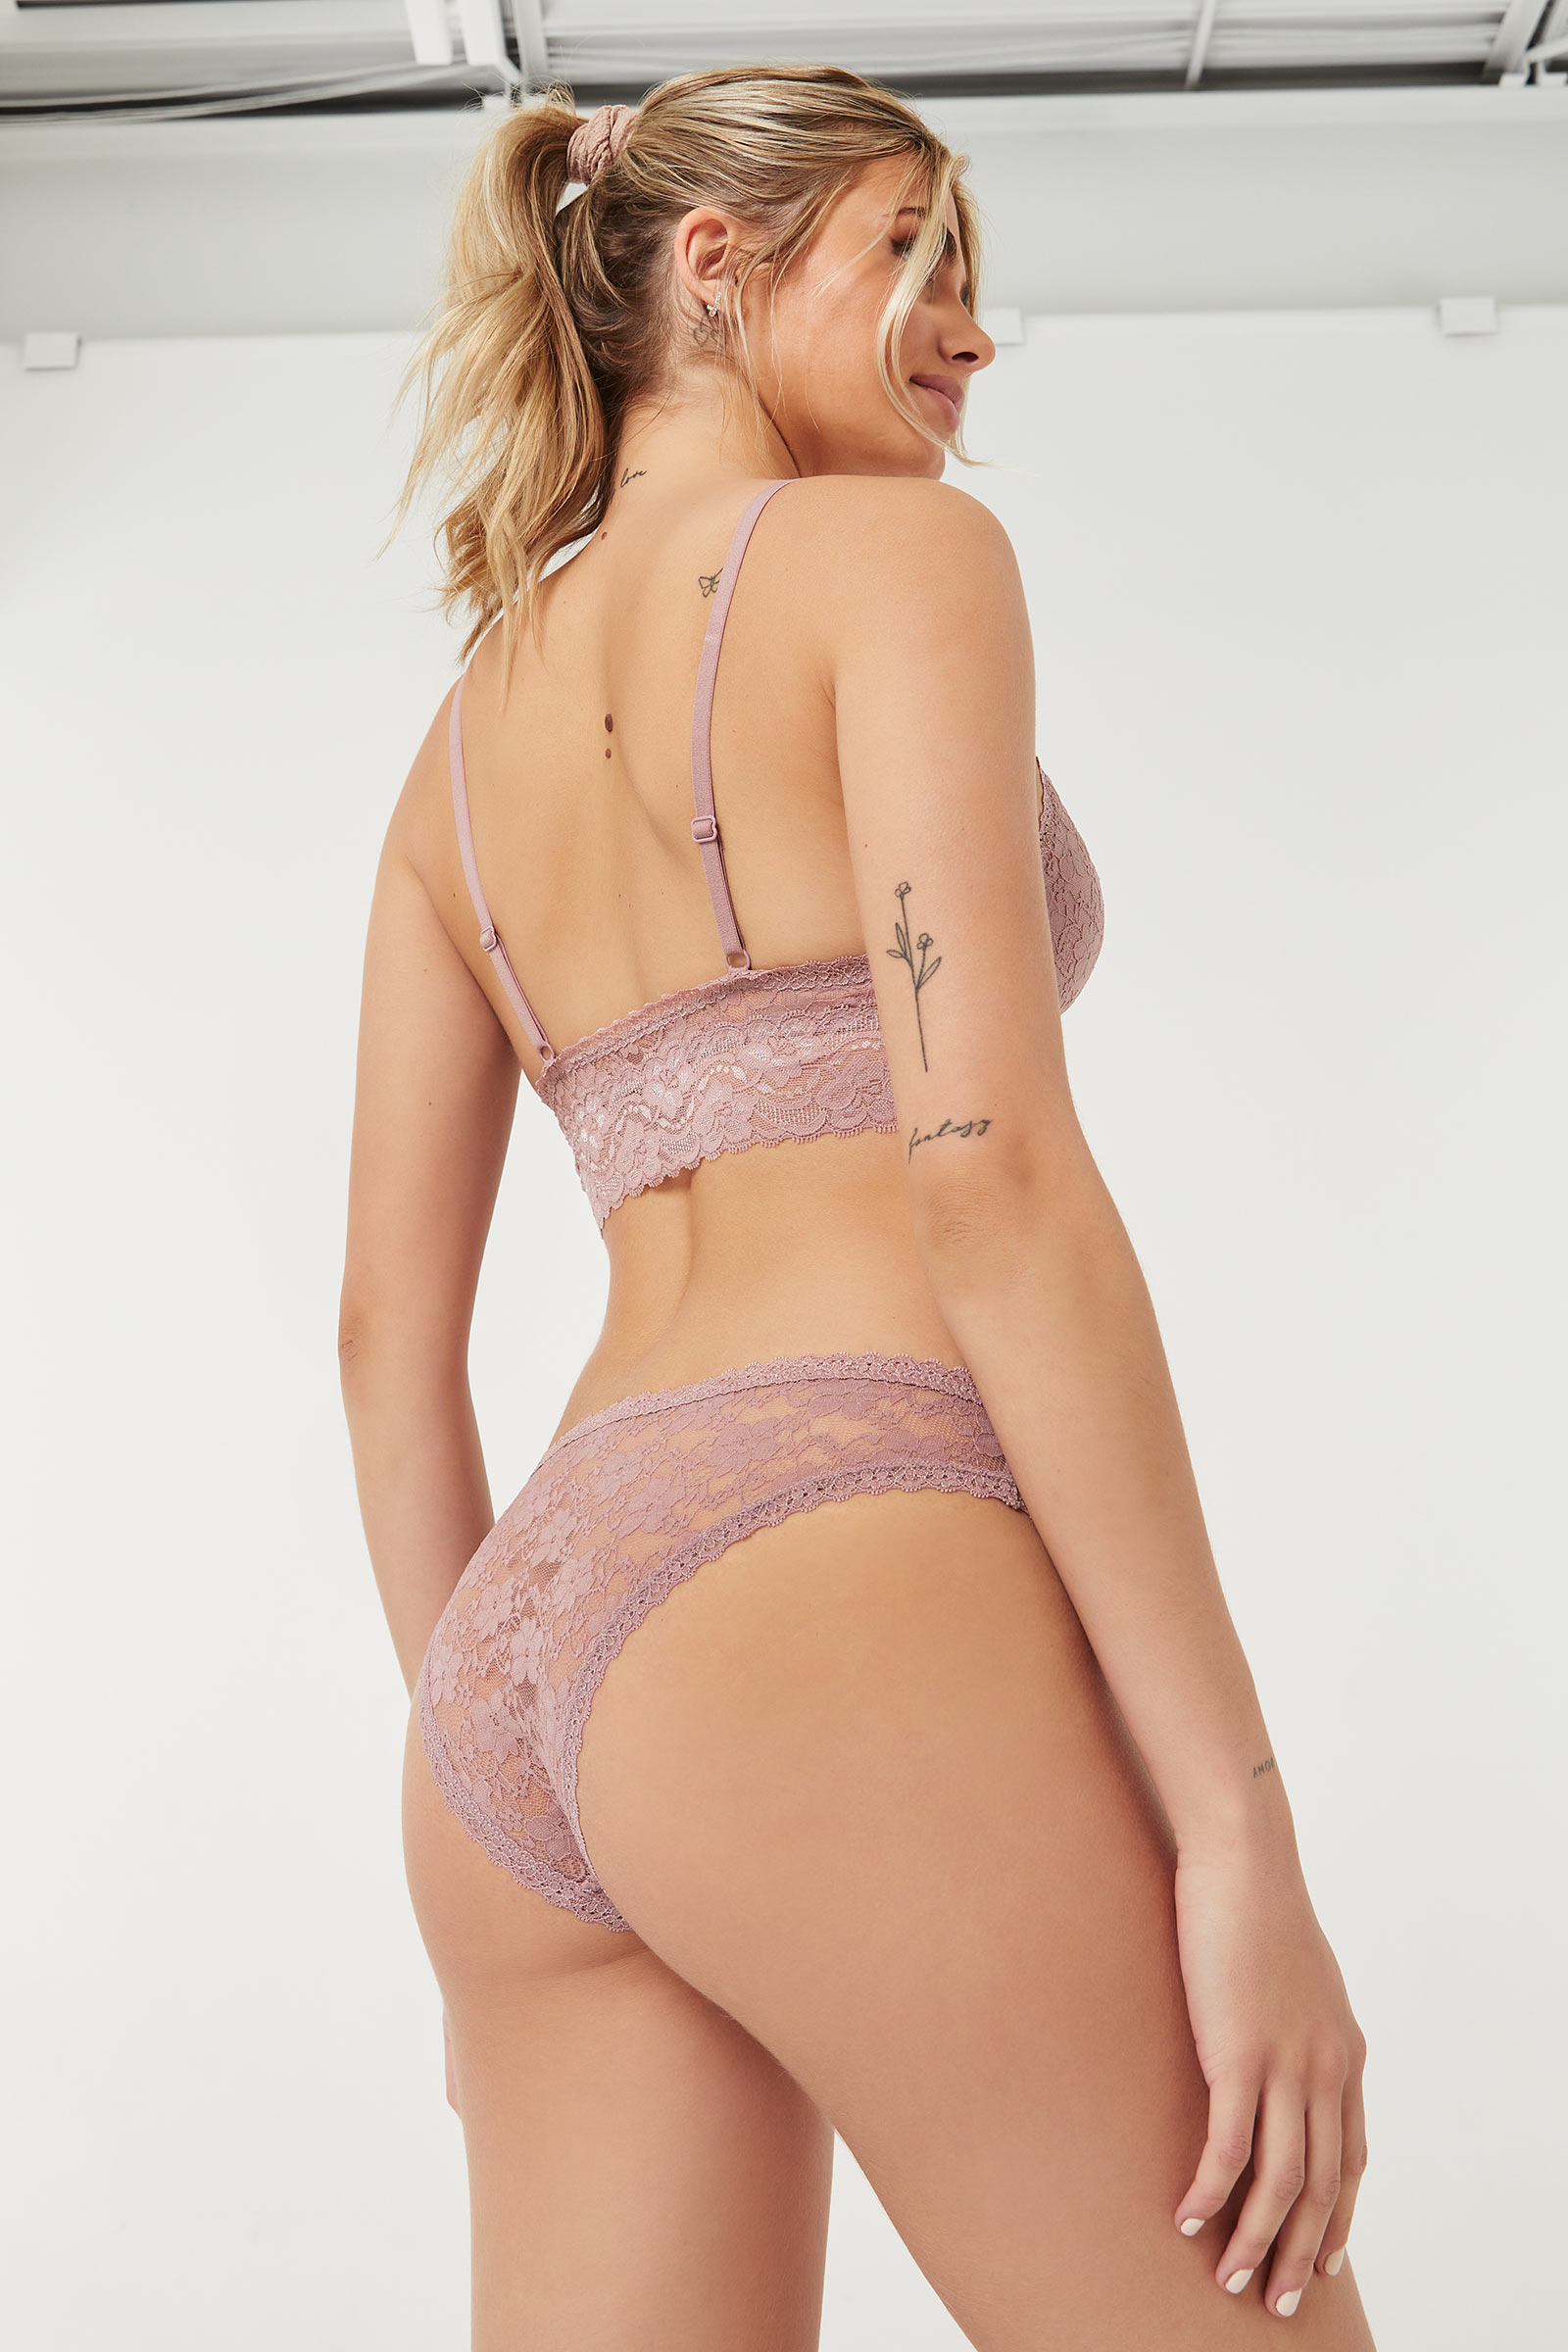 2-Piece Set Lace Bralette and Cheeky Panty